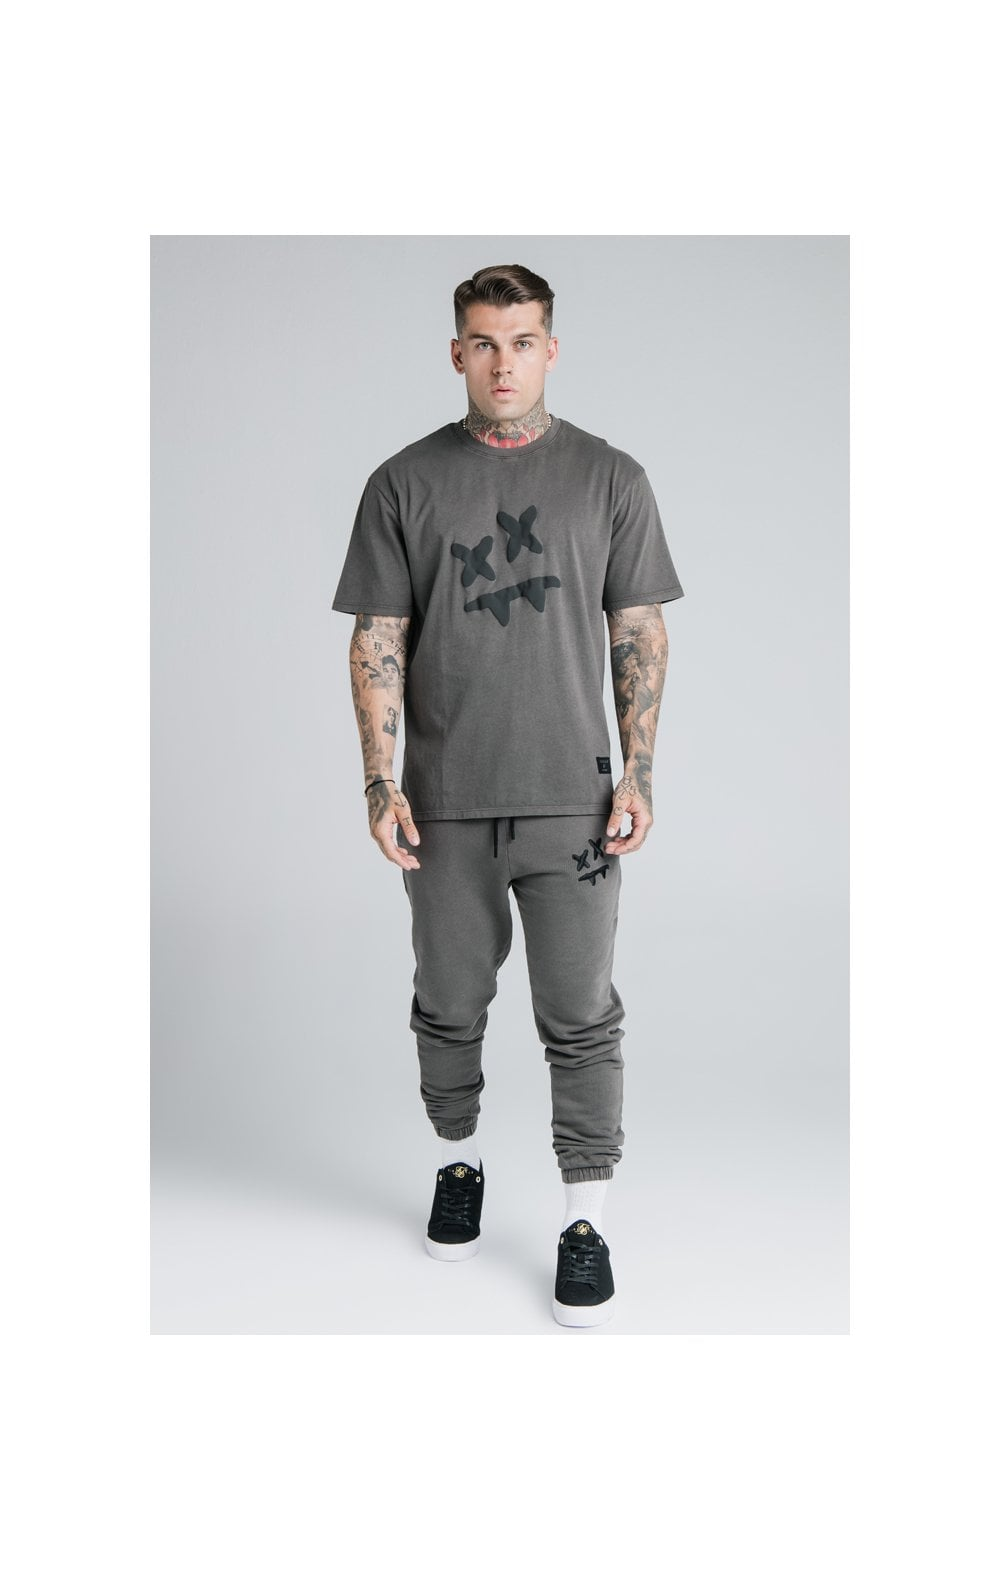 SikSilk X Steve Aoki S/S Oversize Essential Tee – Washed Grey (3)